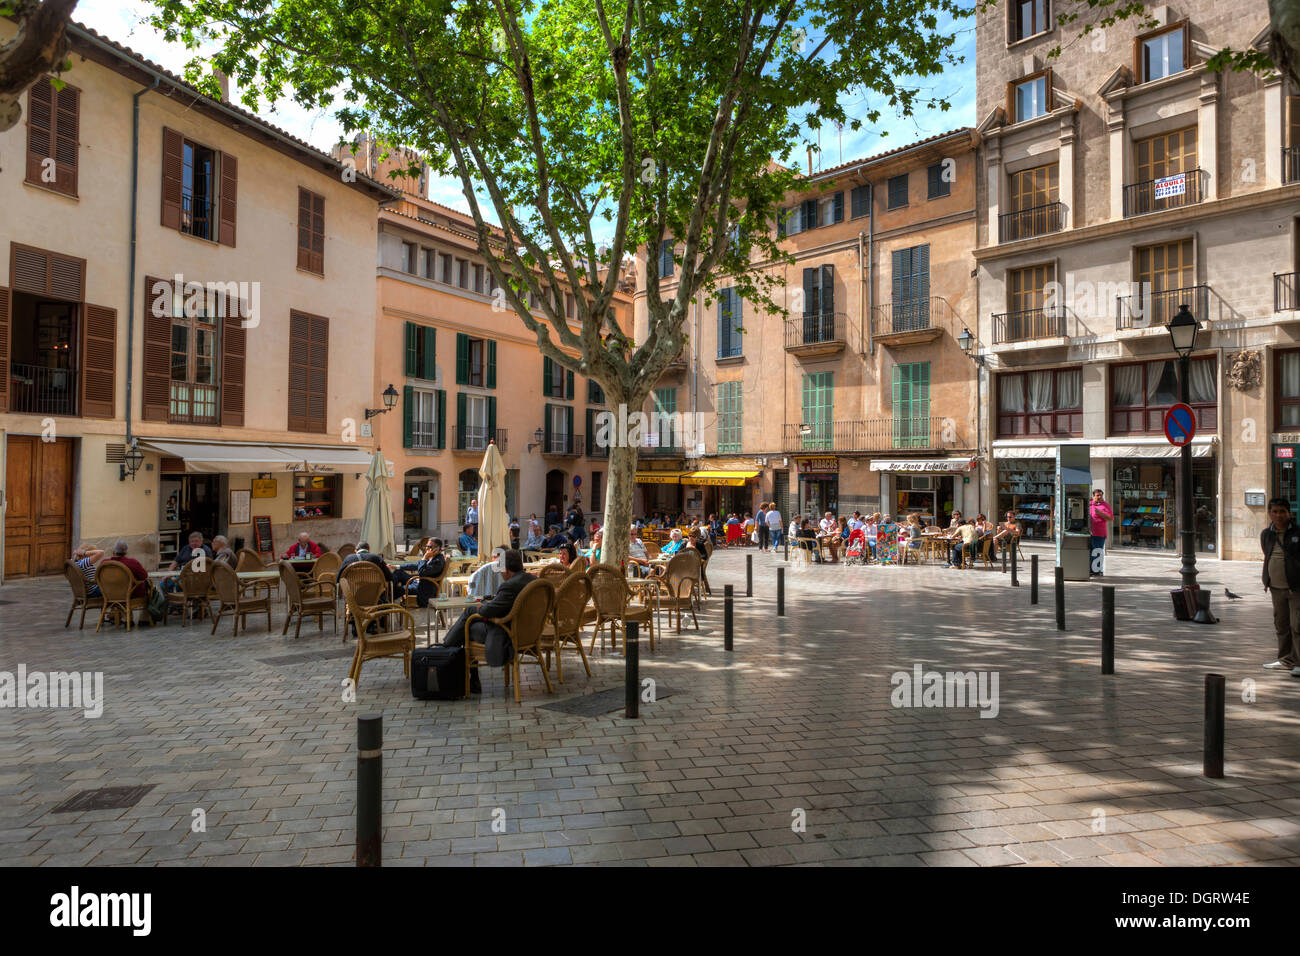 street cafes on pla a de santa eulalia square historic town centre stock photo royalty free. Black Bedroom Furniture Sets. Home Design Ideas